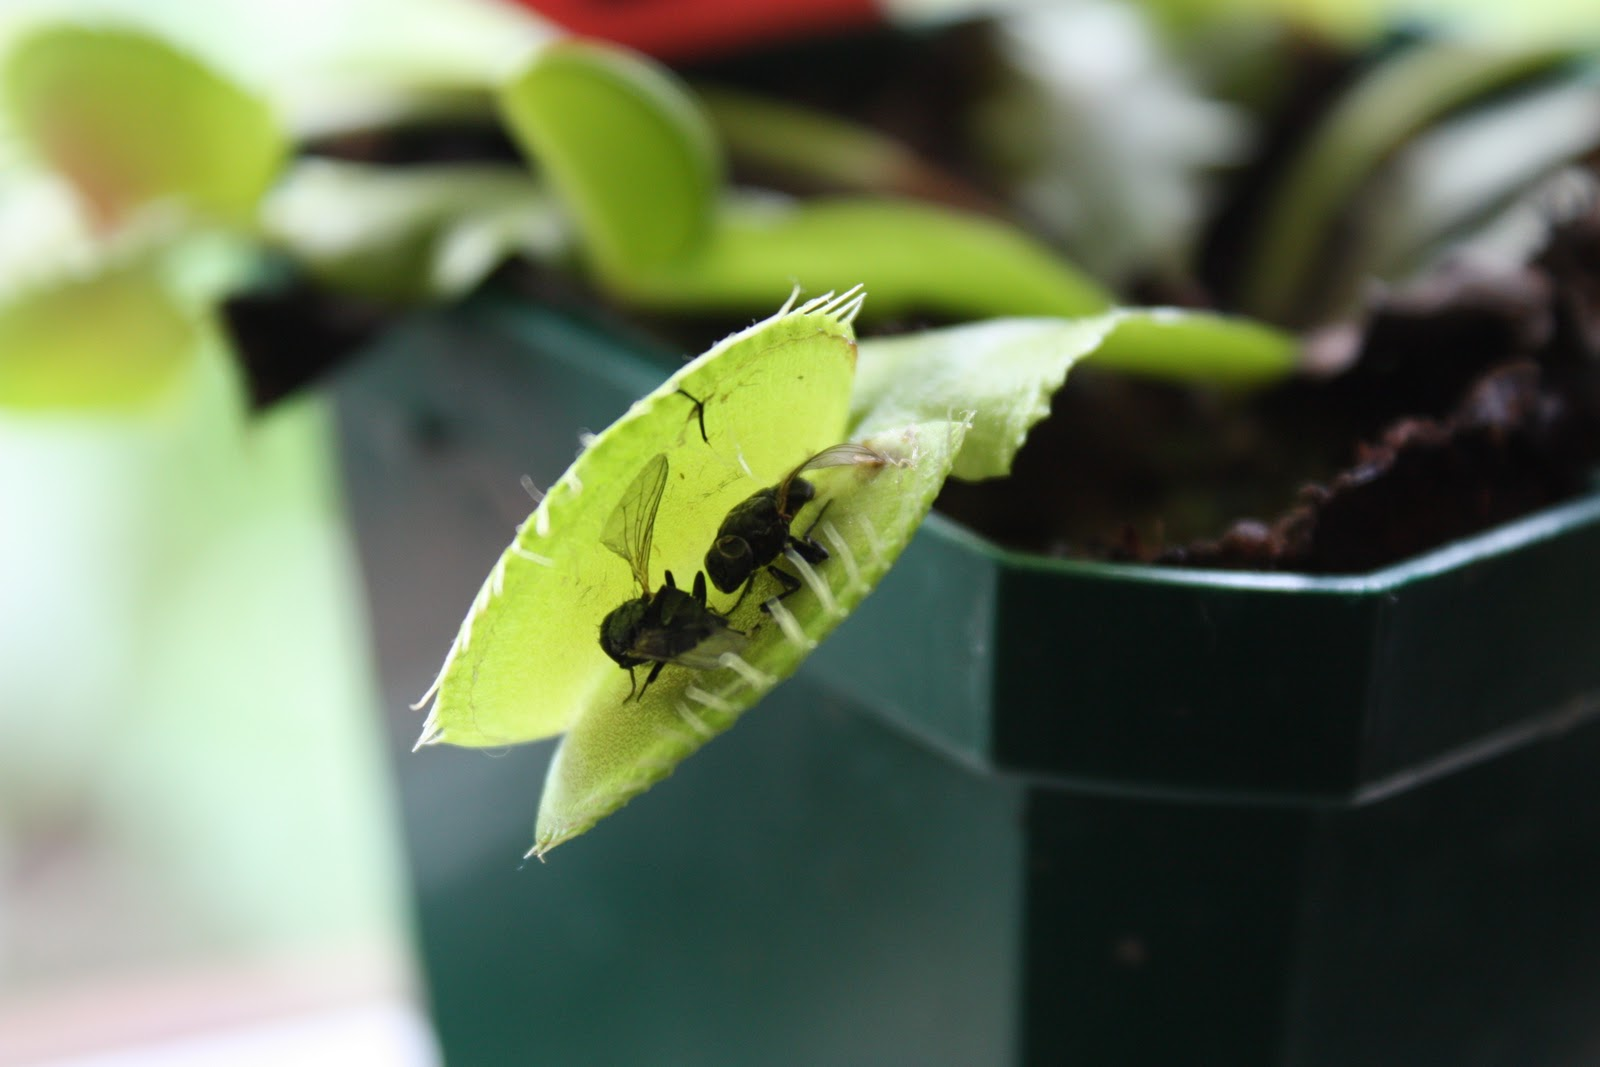 Venus fly trap (photo: Nicola Toki)